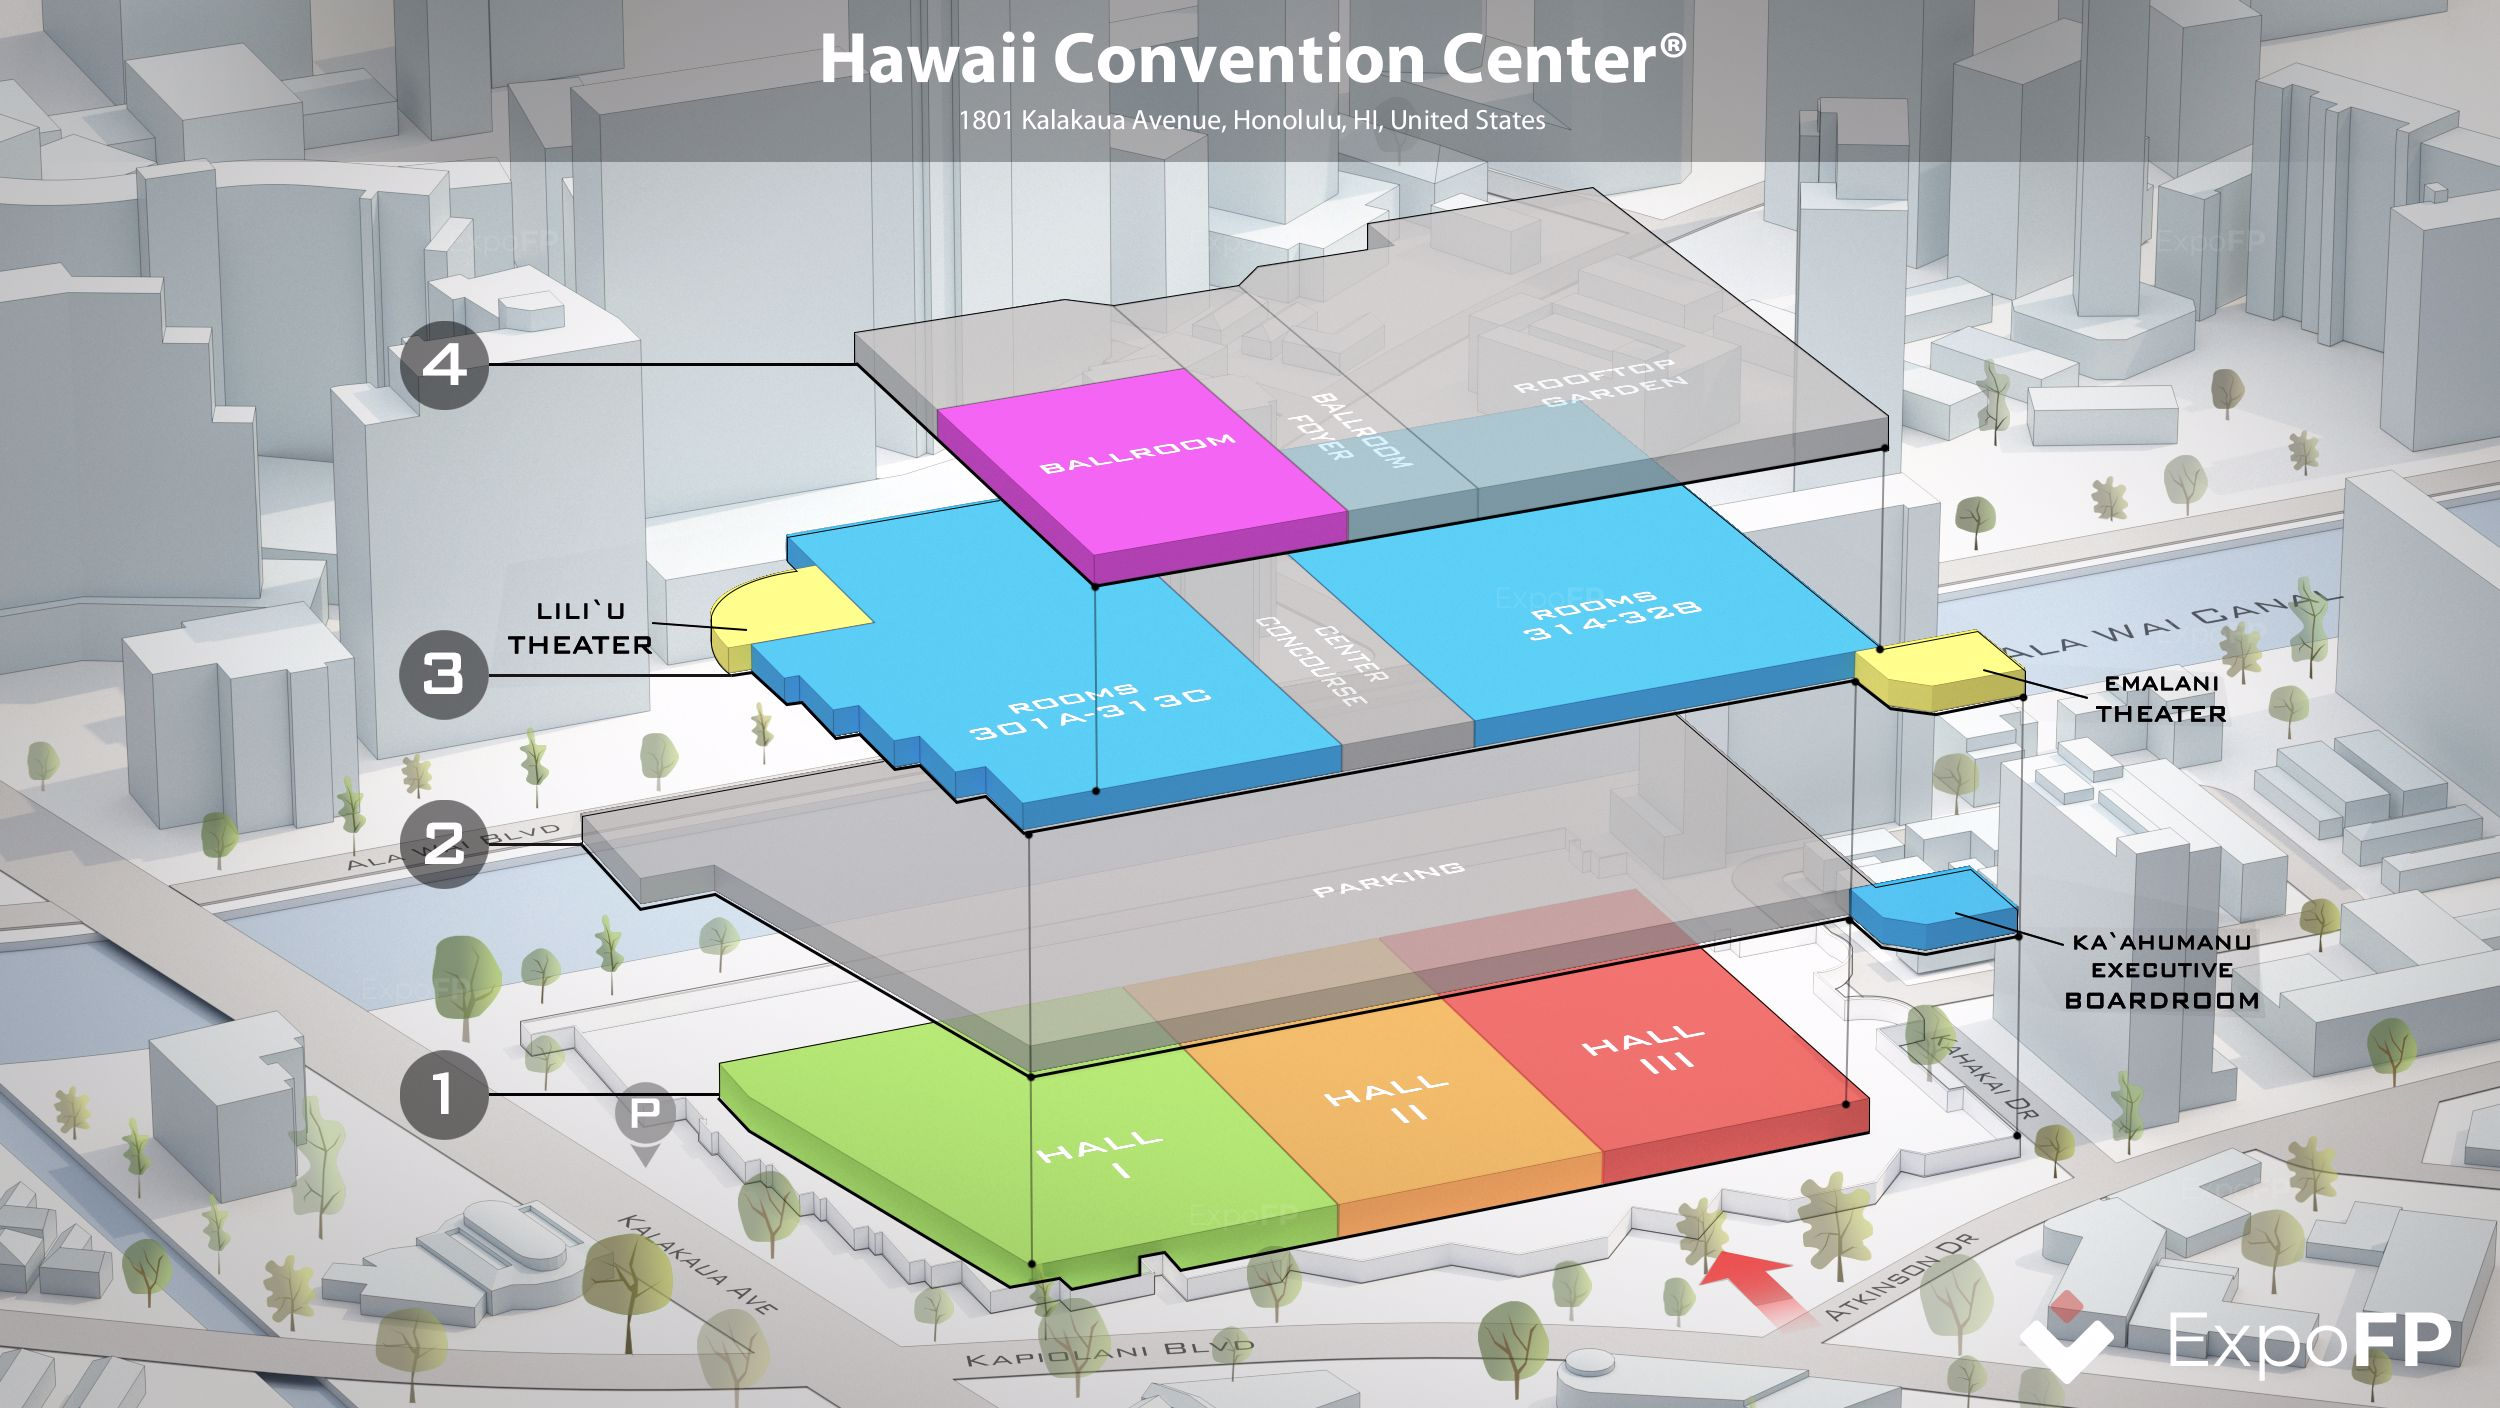 Hawaii Convention Center Floor Plan